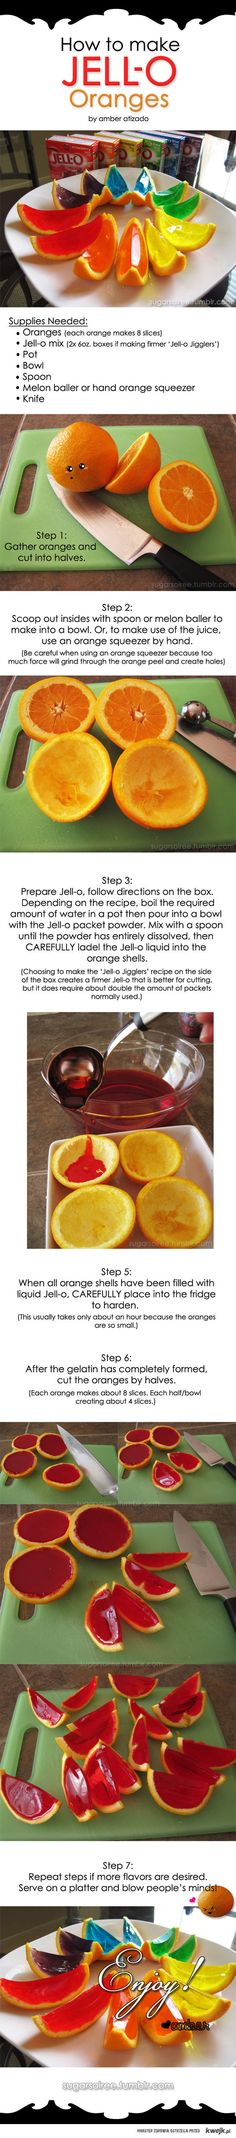 Jello oranges. [Replace 8-10oz cold water (using big box jello) w/ vodka if you want jello shots instead!]